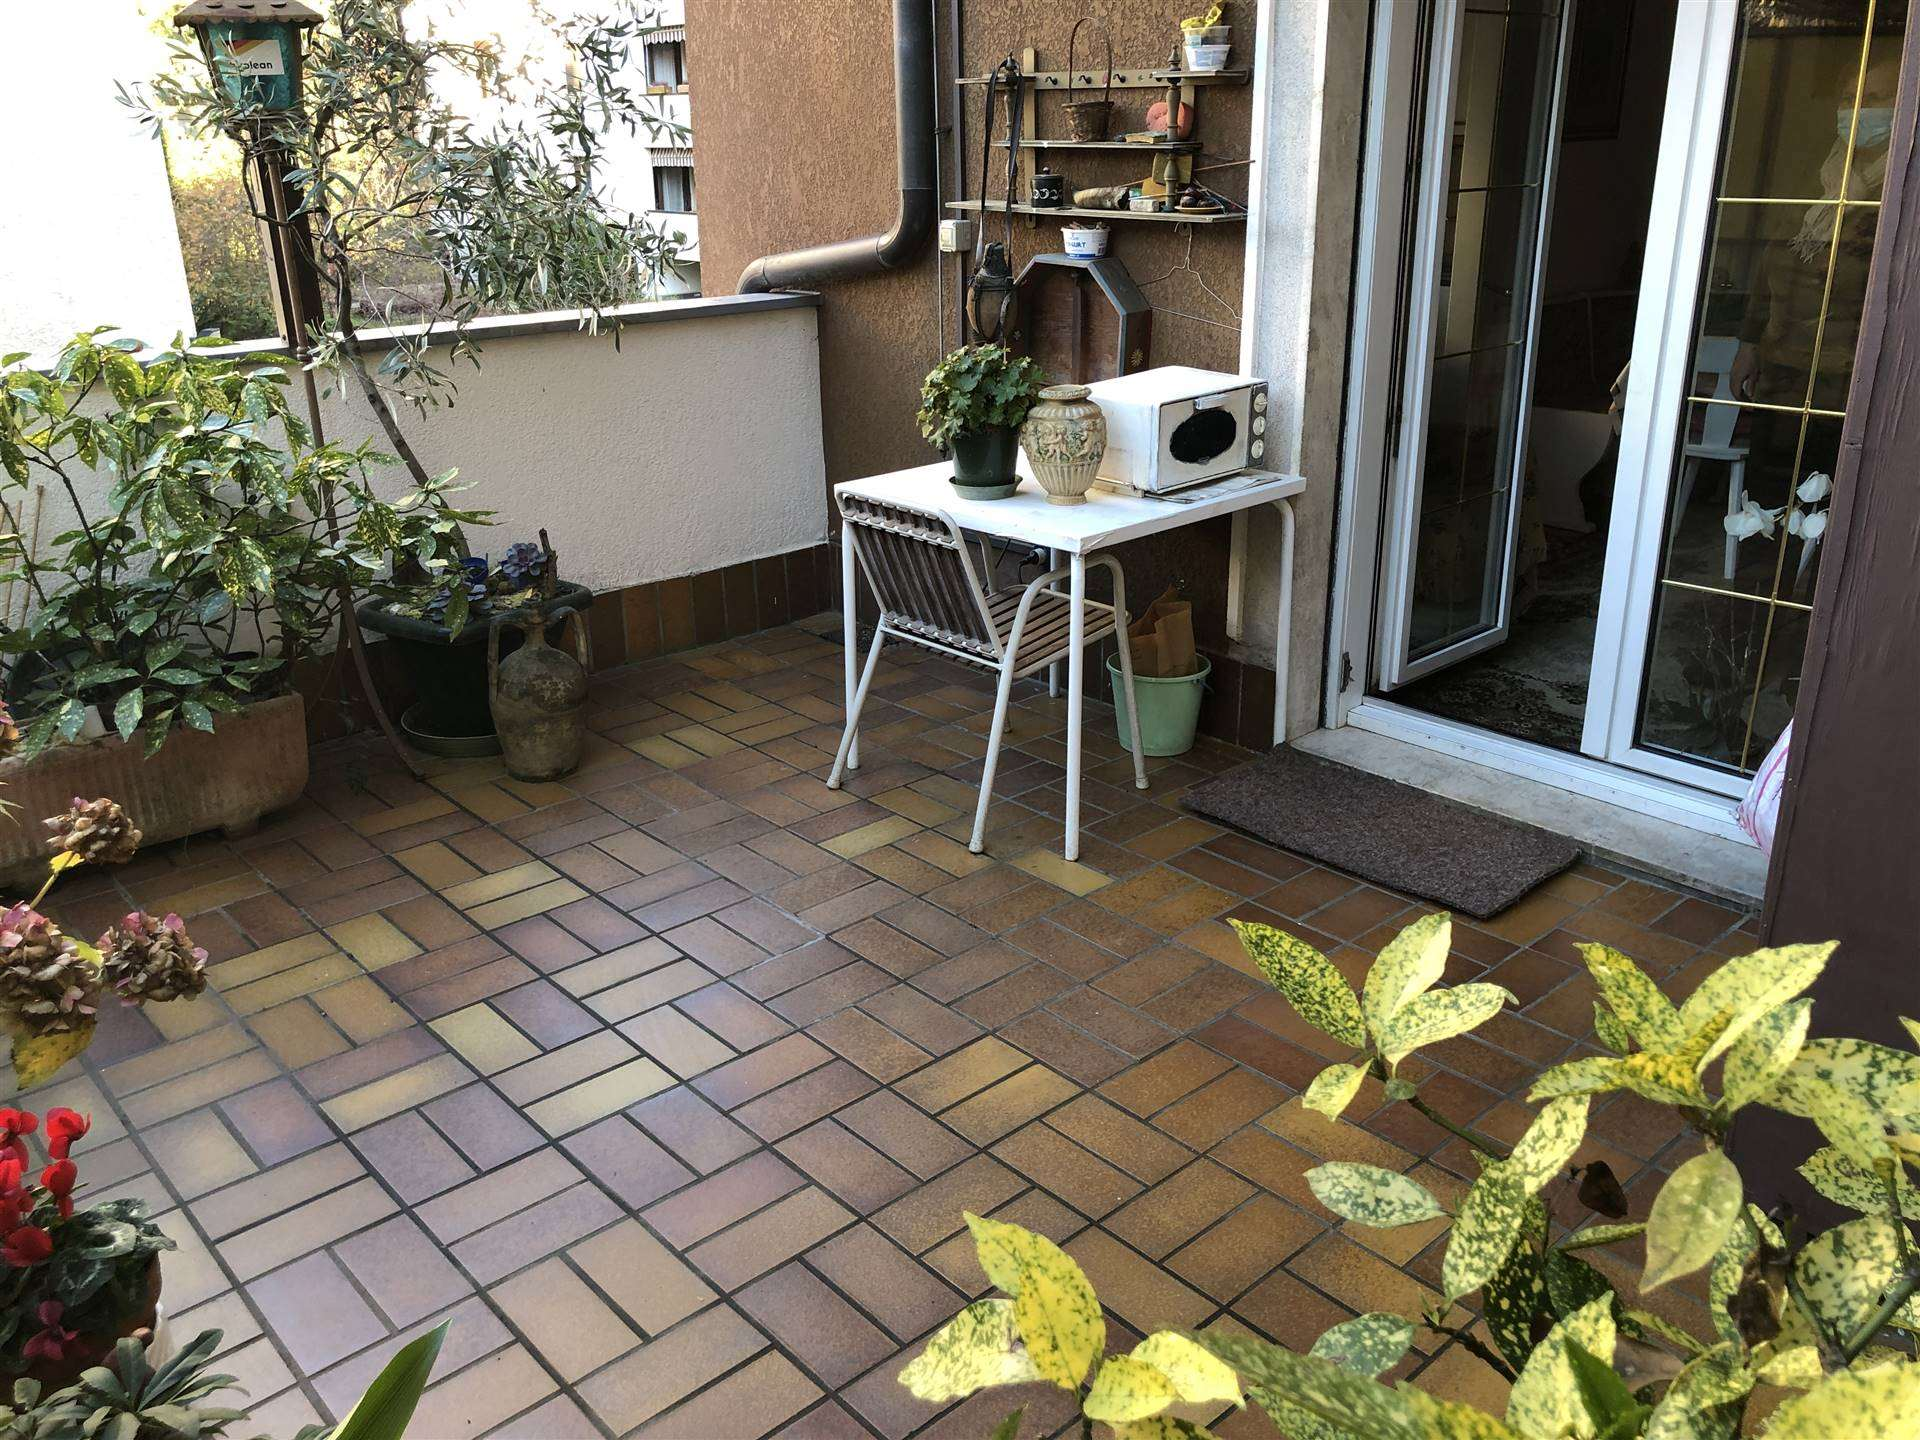 CENTRO STORICO, BOLZANO, Apartment for sale of 81 Sq. mt., Good condition, Heating Centralized, Energetic class: G, placed at 1°, composed by: 3